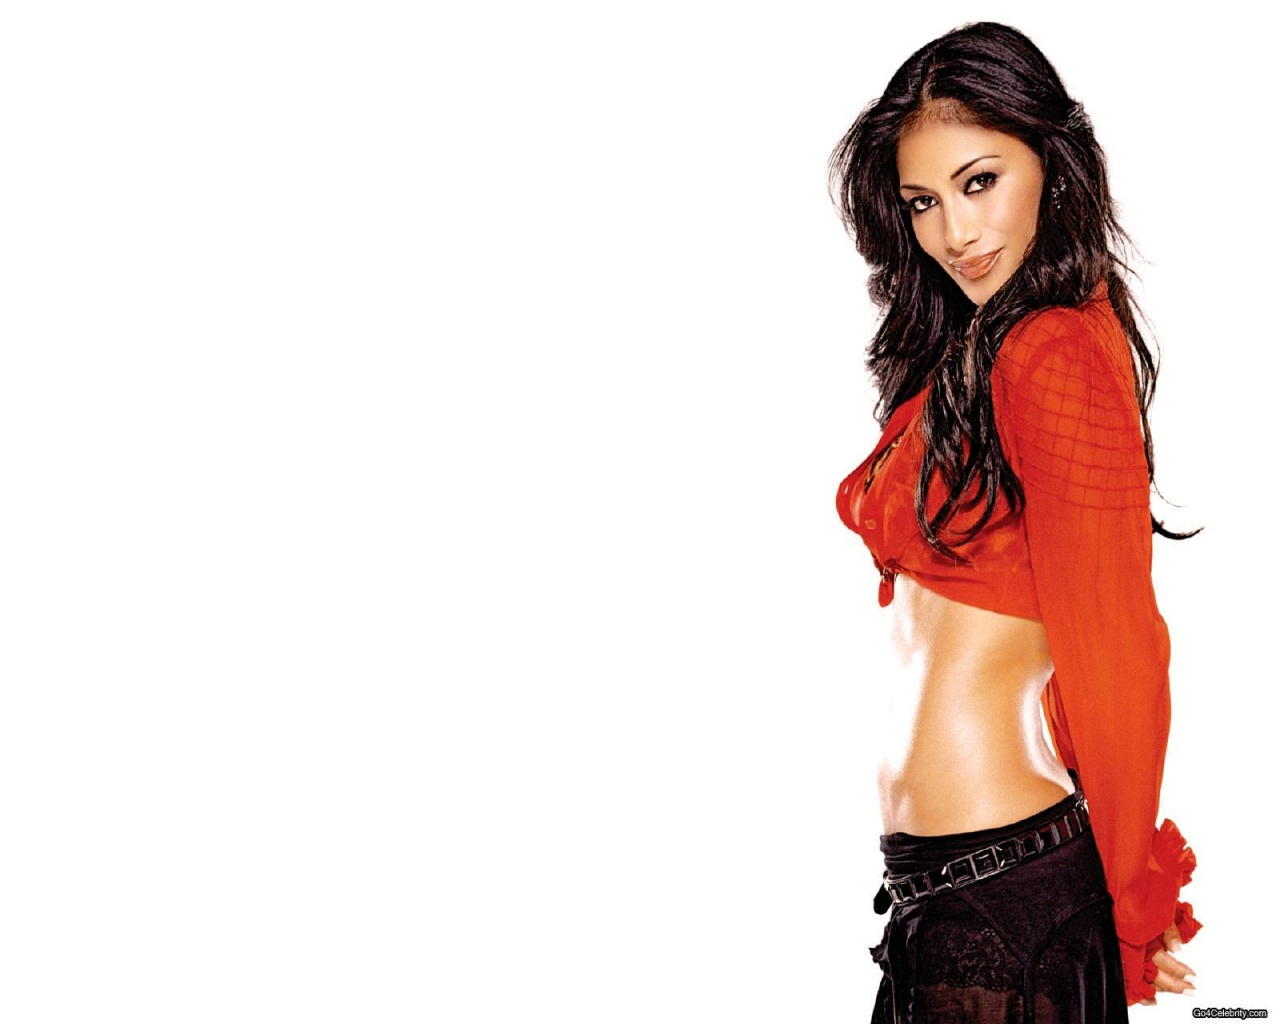 nicole scherzinger wallpapers hd A1